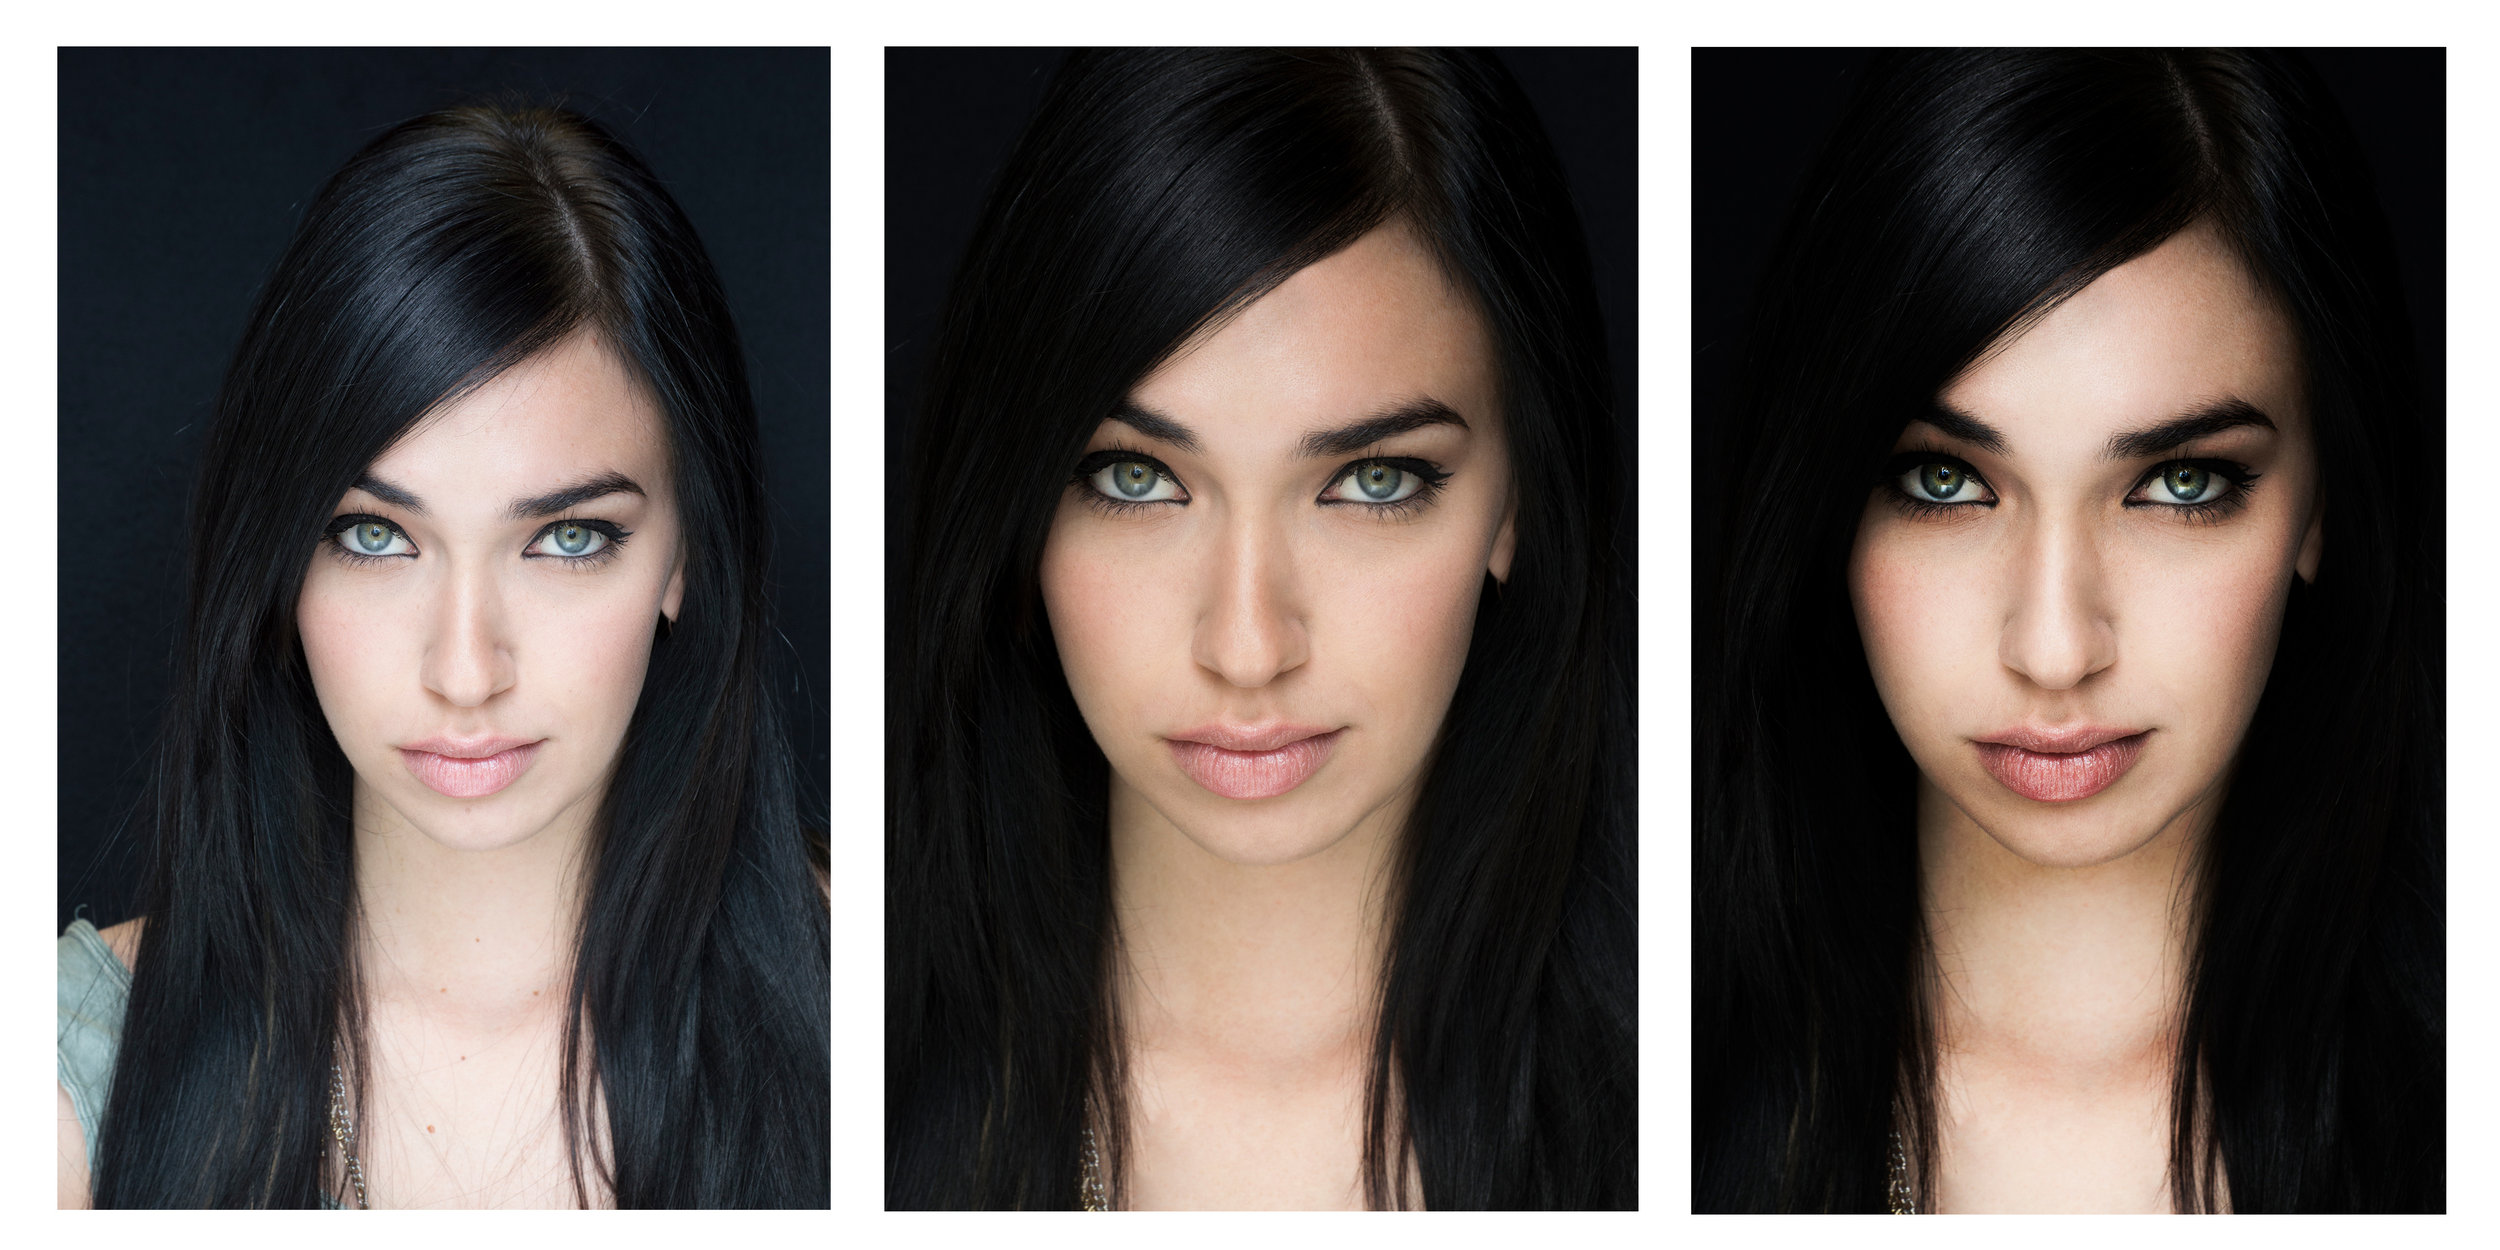 """Stages of retouching for the image used in my """"Nova"""" poster, the first being the original, the second a minor retouch, and the third a more drastic edit."""